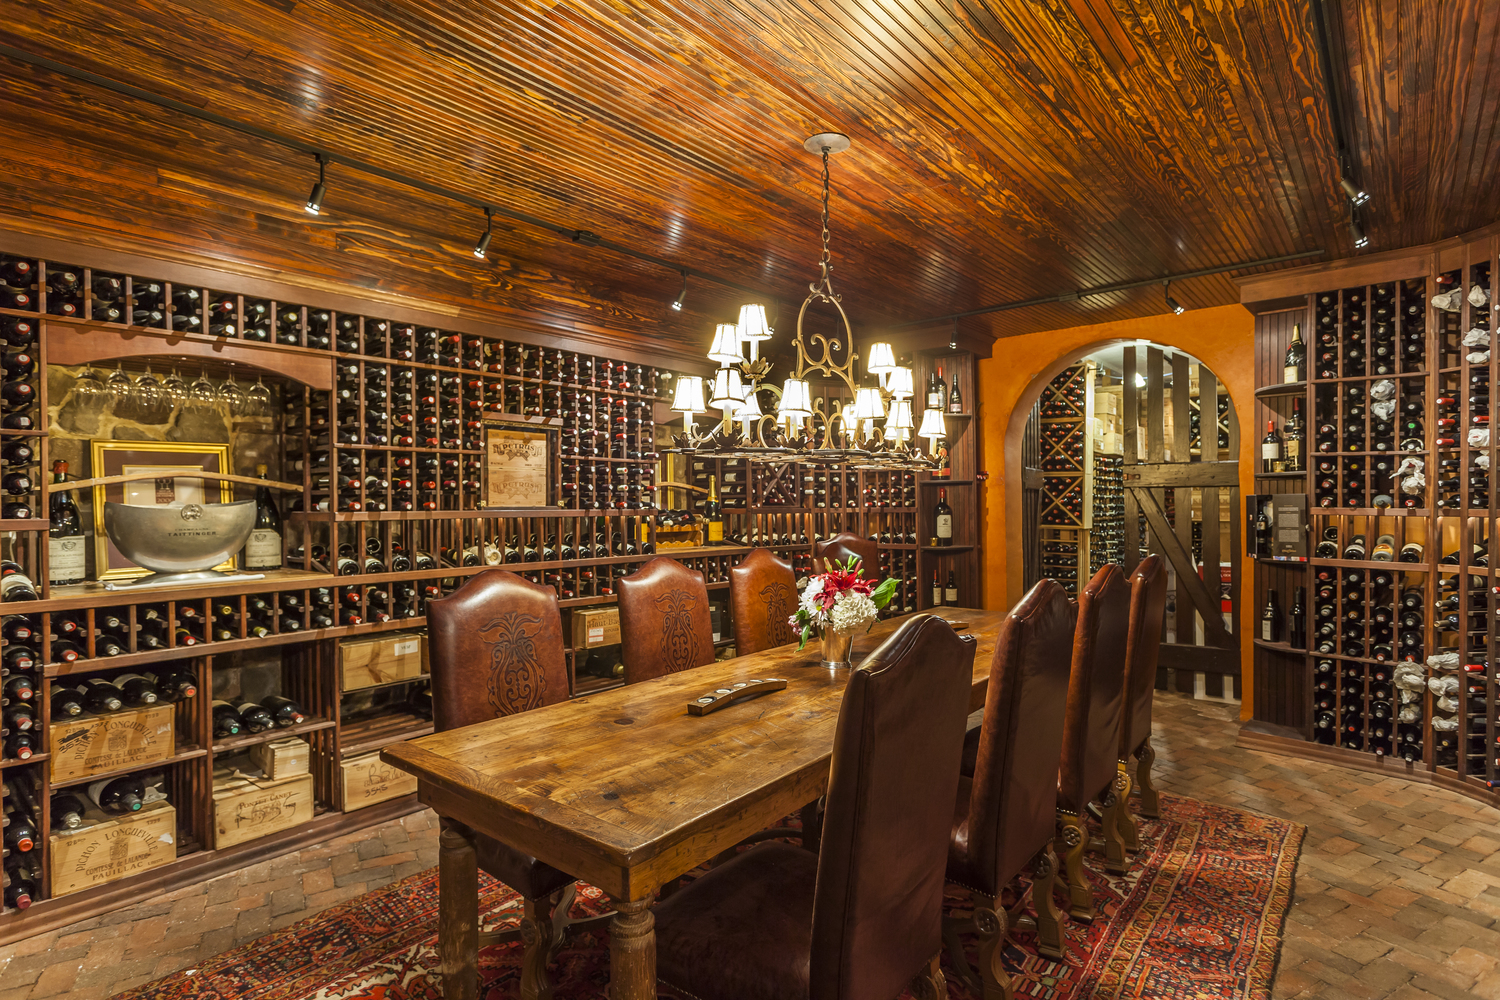 Wine Cellar Pictures Wine Cellar Antrim 1844 Country House Hotel